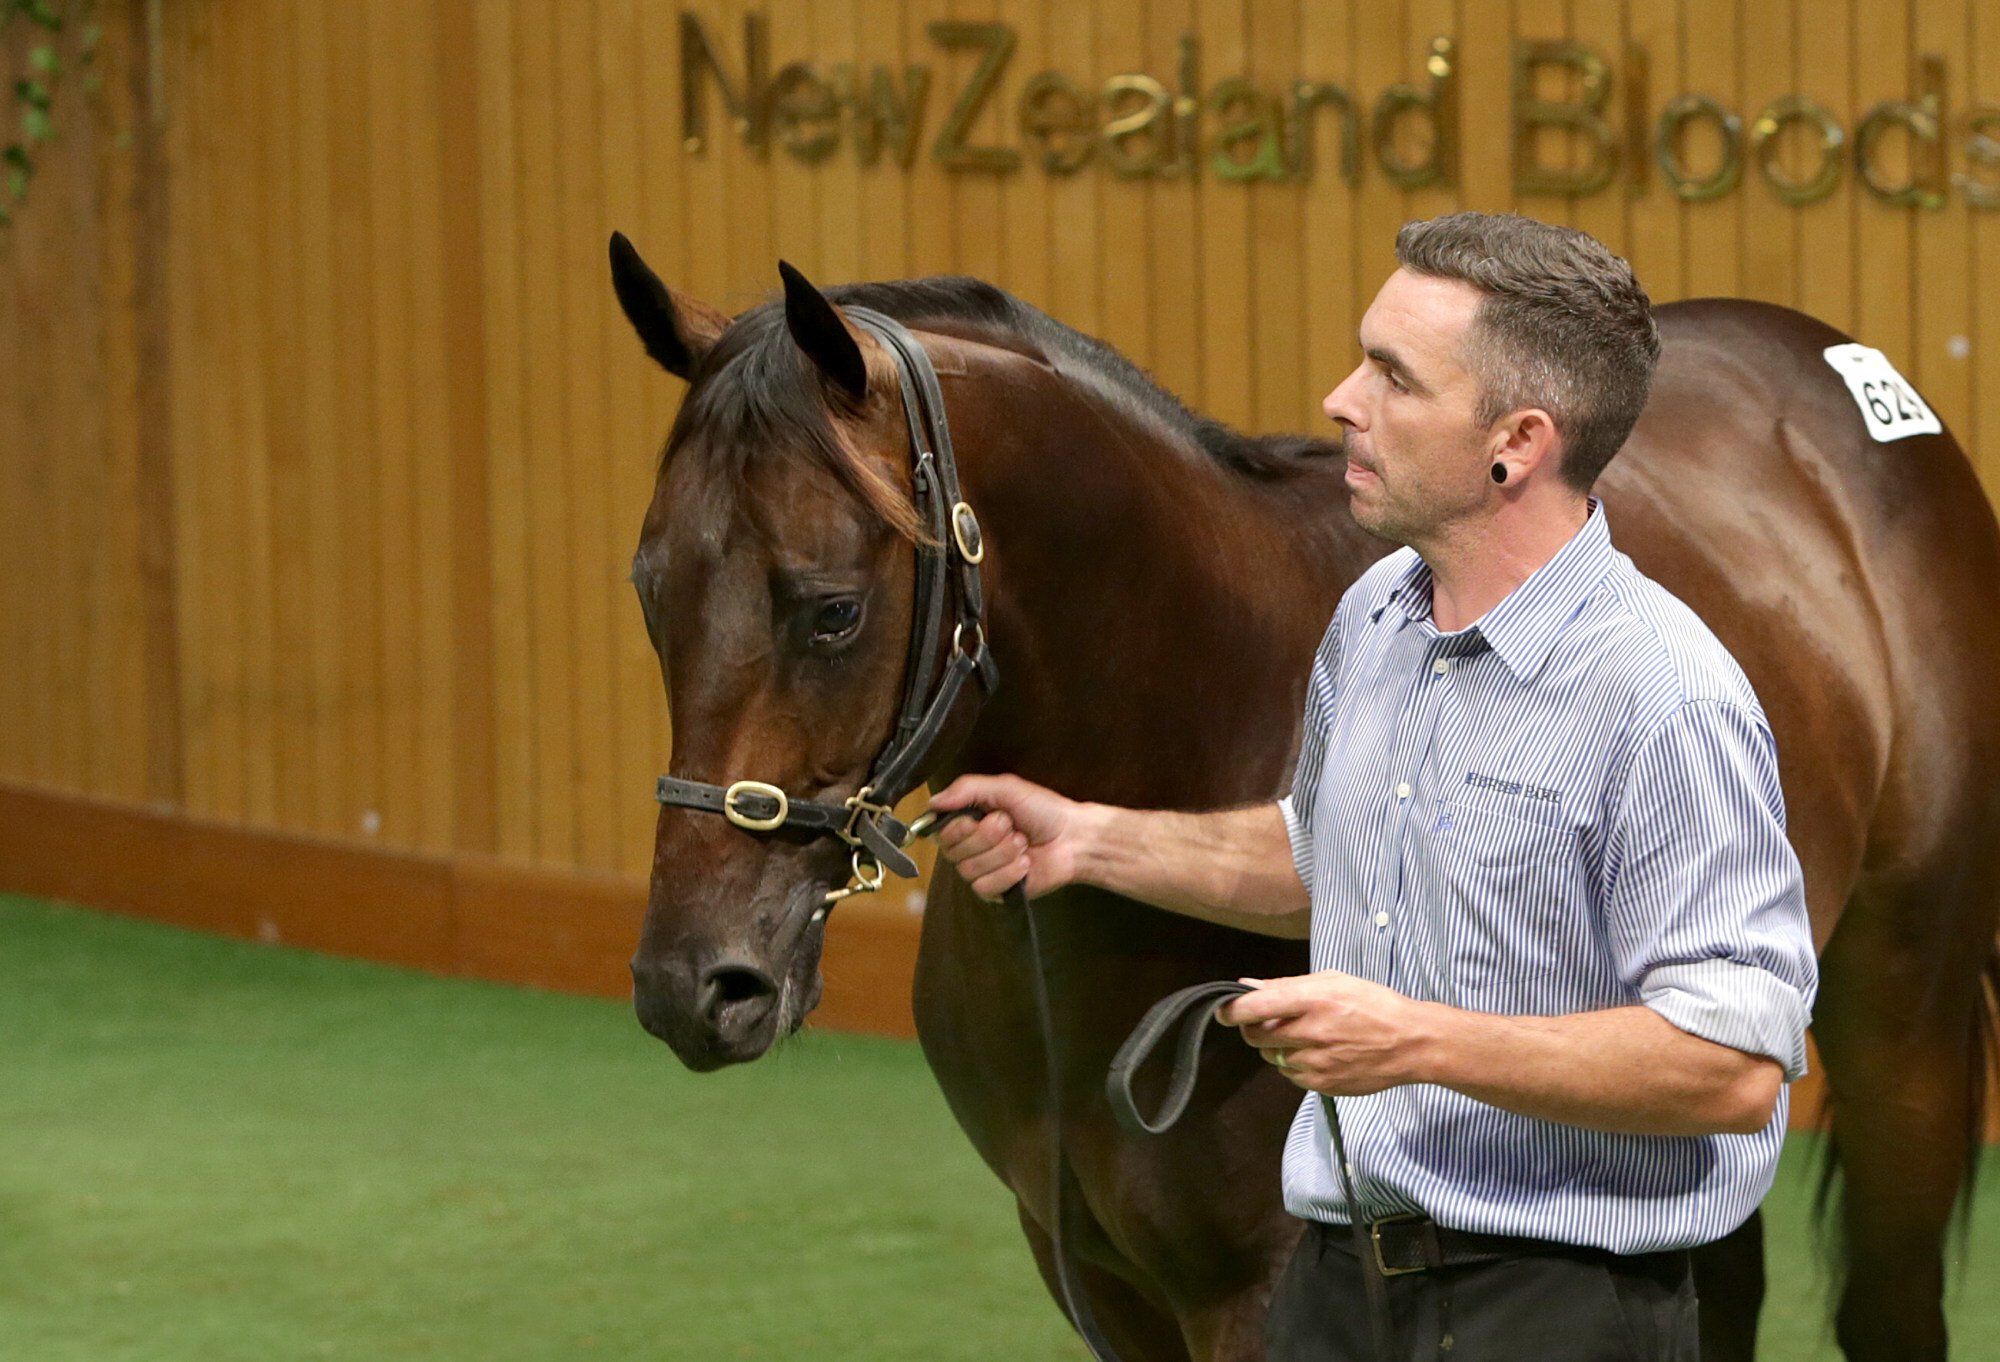 Hong Kong Derby winner Sky Darci with Highden Park's Sam Bleakley at the 2018 New Zealand Bloodstock Yearling Sales. Photo: Trish Dunnel